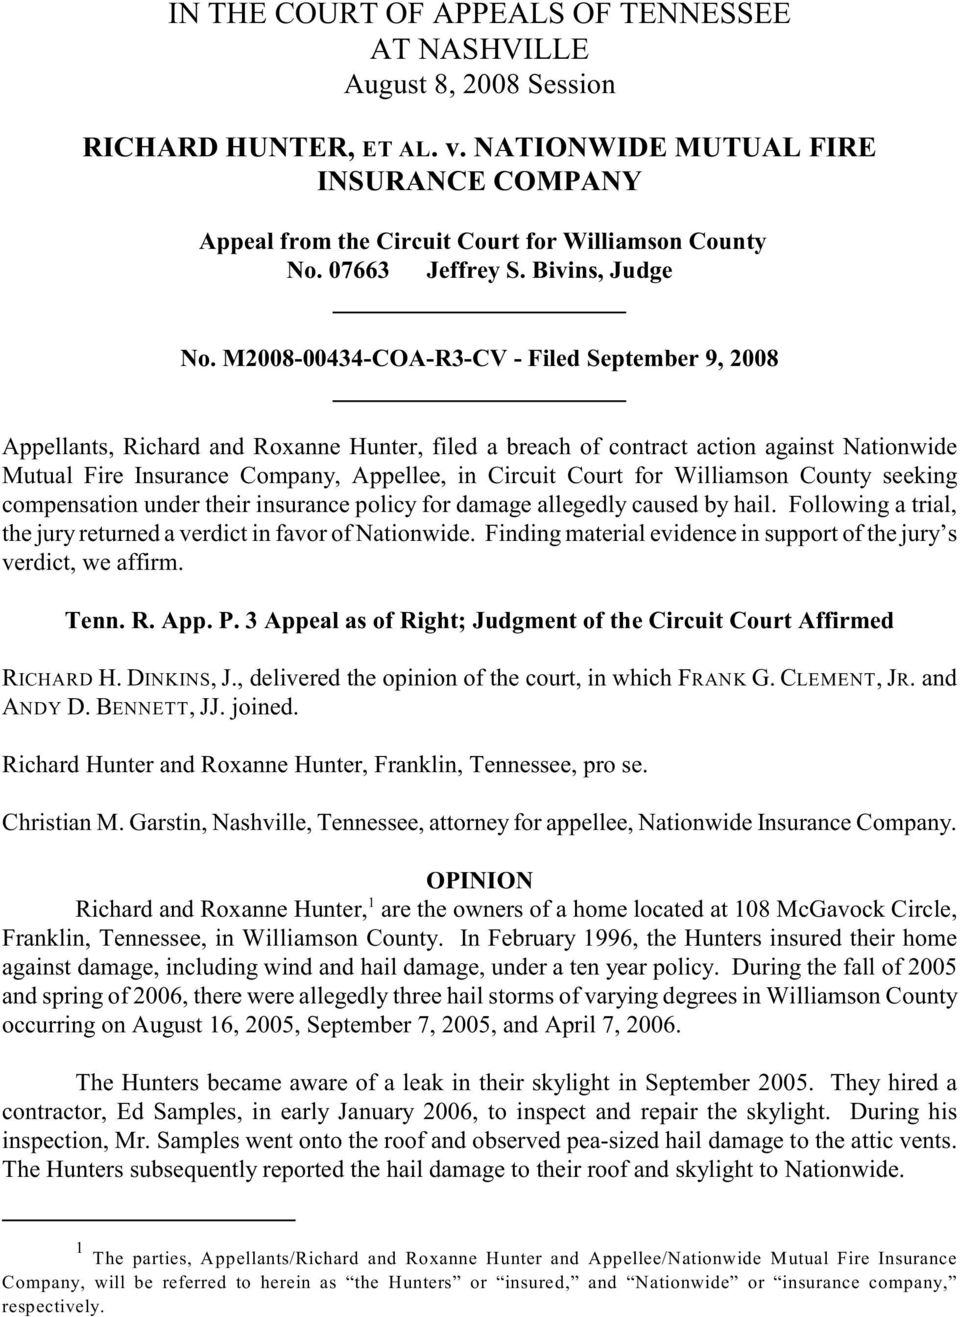 M2008-00434-COA-R3-CV - Filed September 9, 2008 Appellants, Richard and Roxanne Hunter, filed a breach of contract action against Nationwide Mutual Fire Insurance Company, Appellee, in Circuit Court